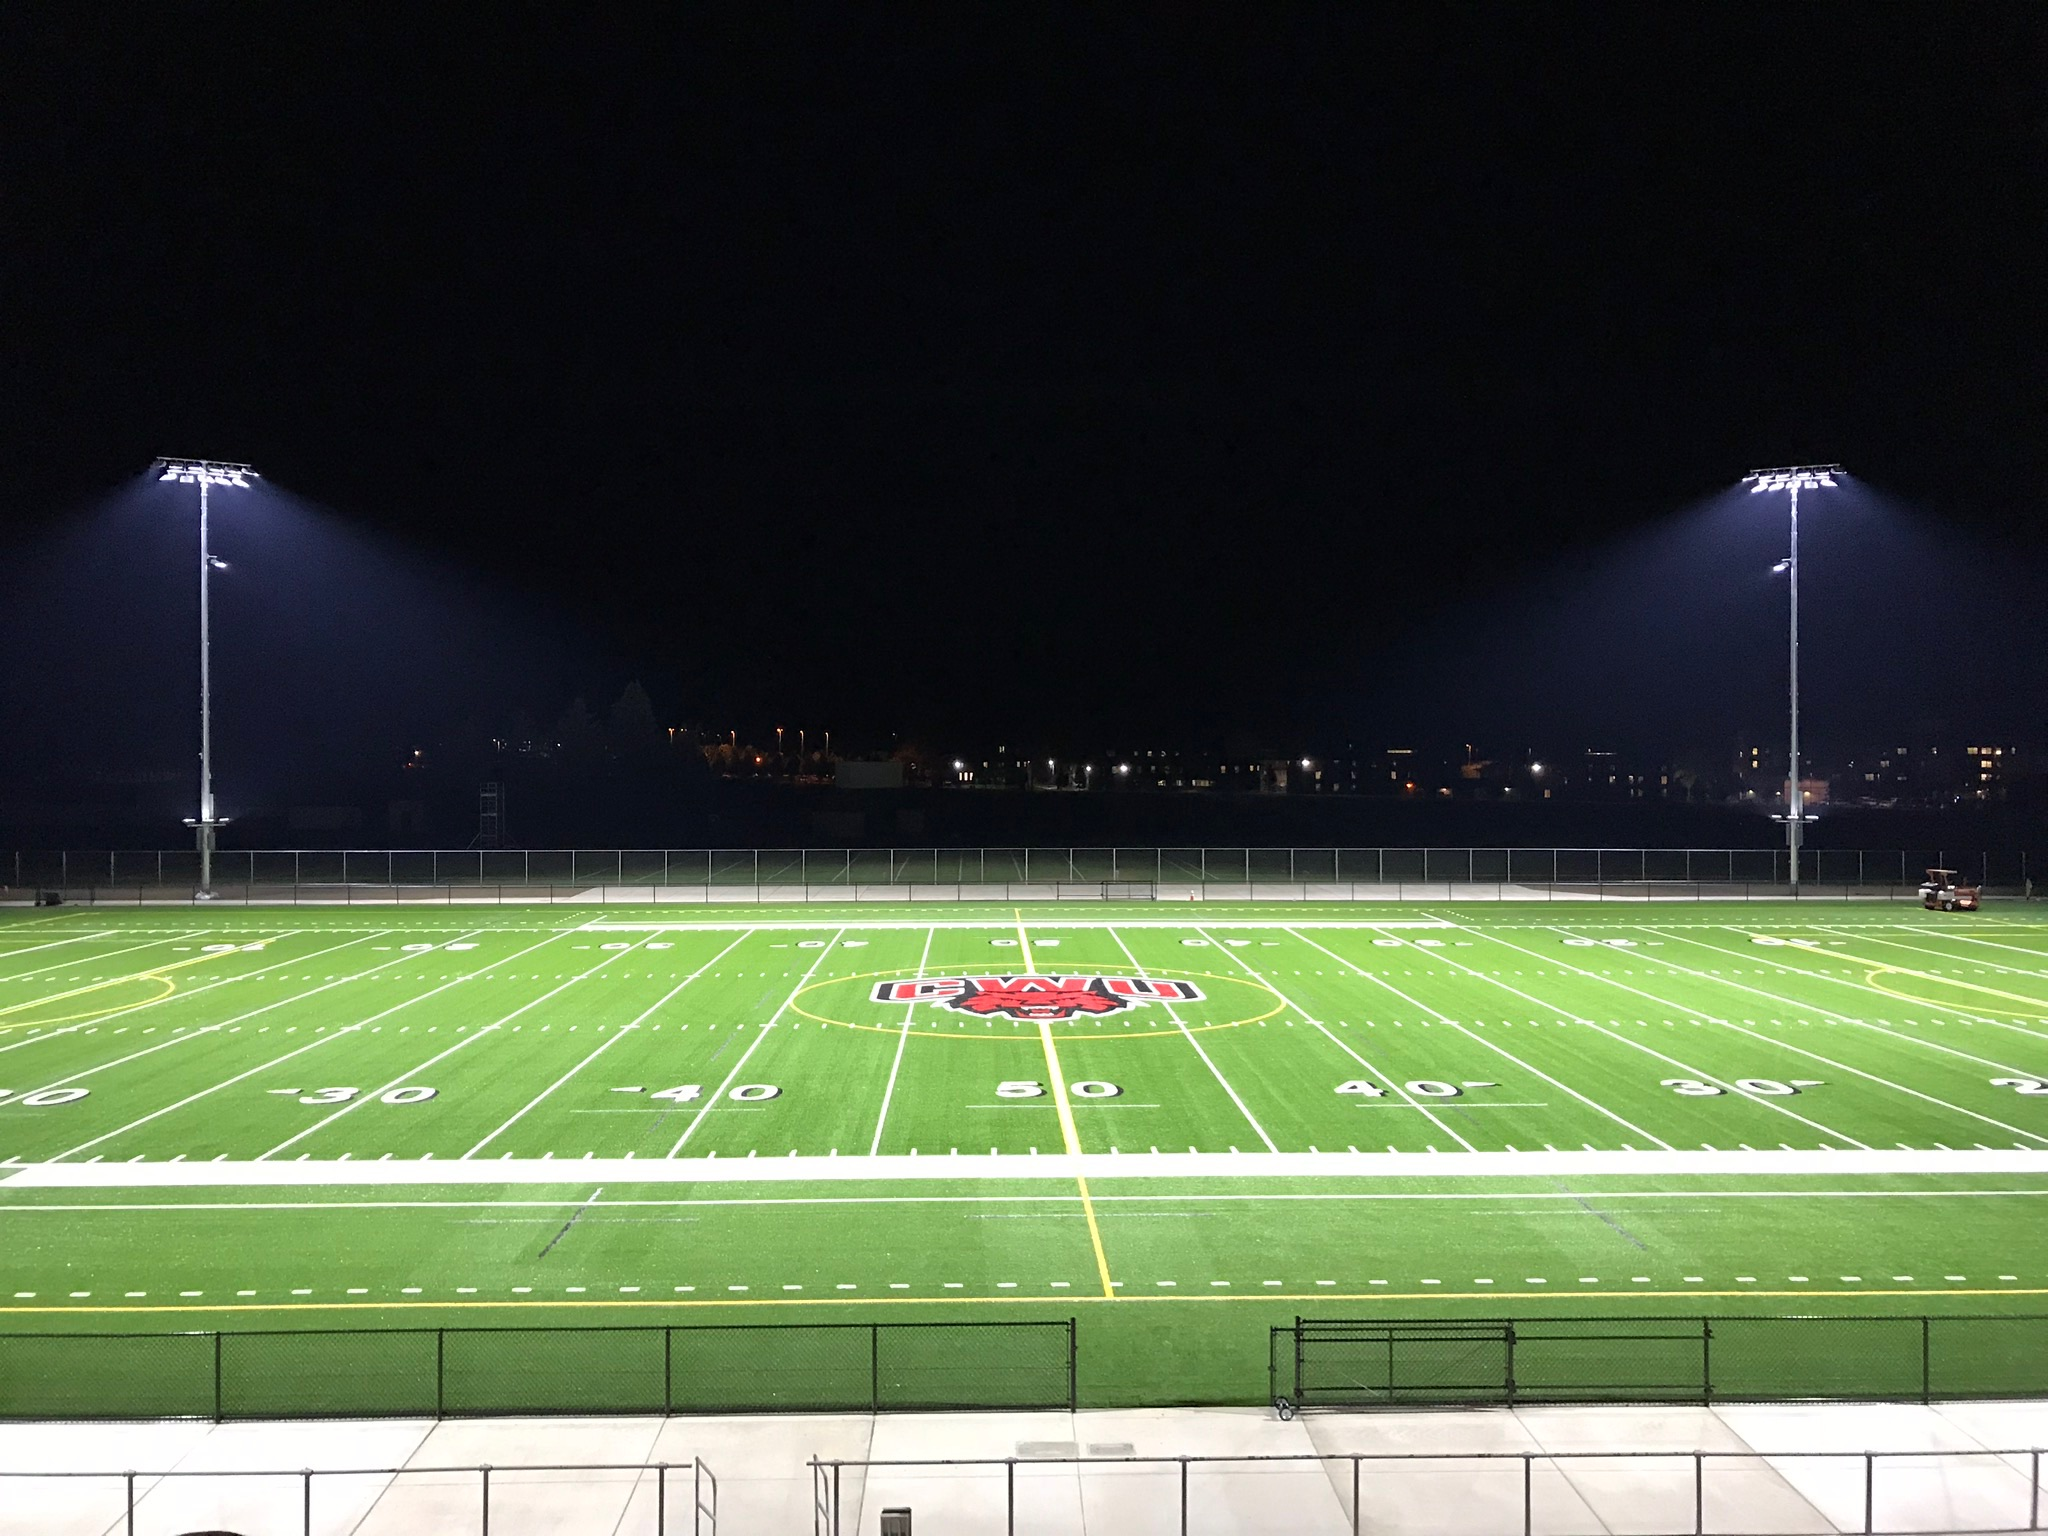 Whether it's new construction or upgrading an existing facility, get our team on your team's sports field, and we'll make sure that everyone will see the game clear as day.